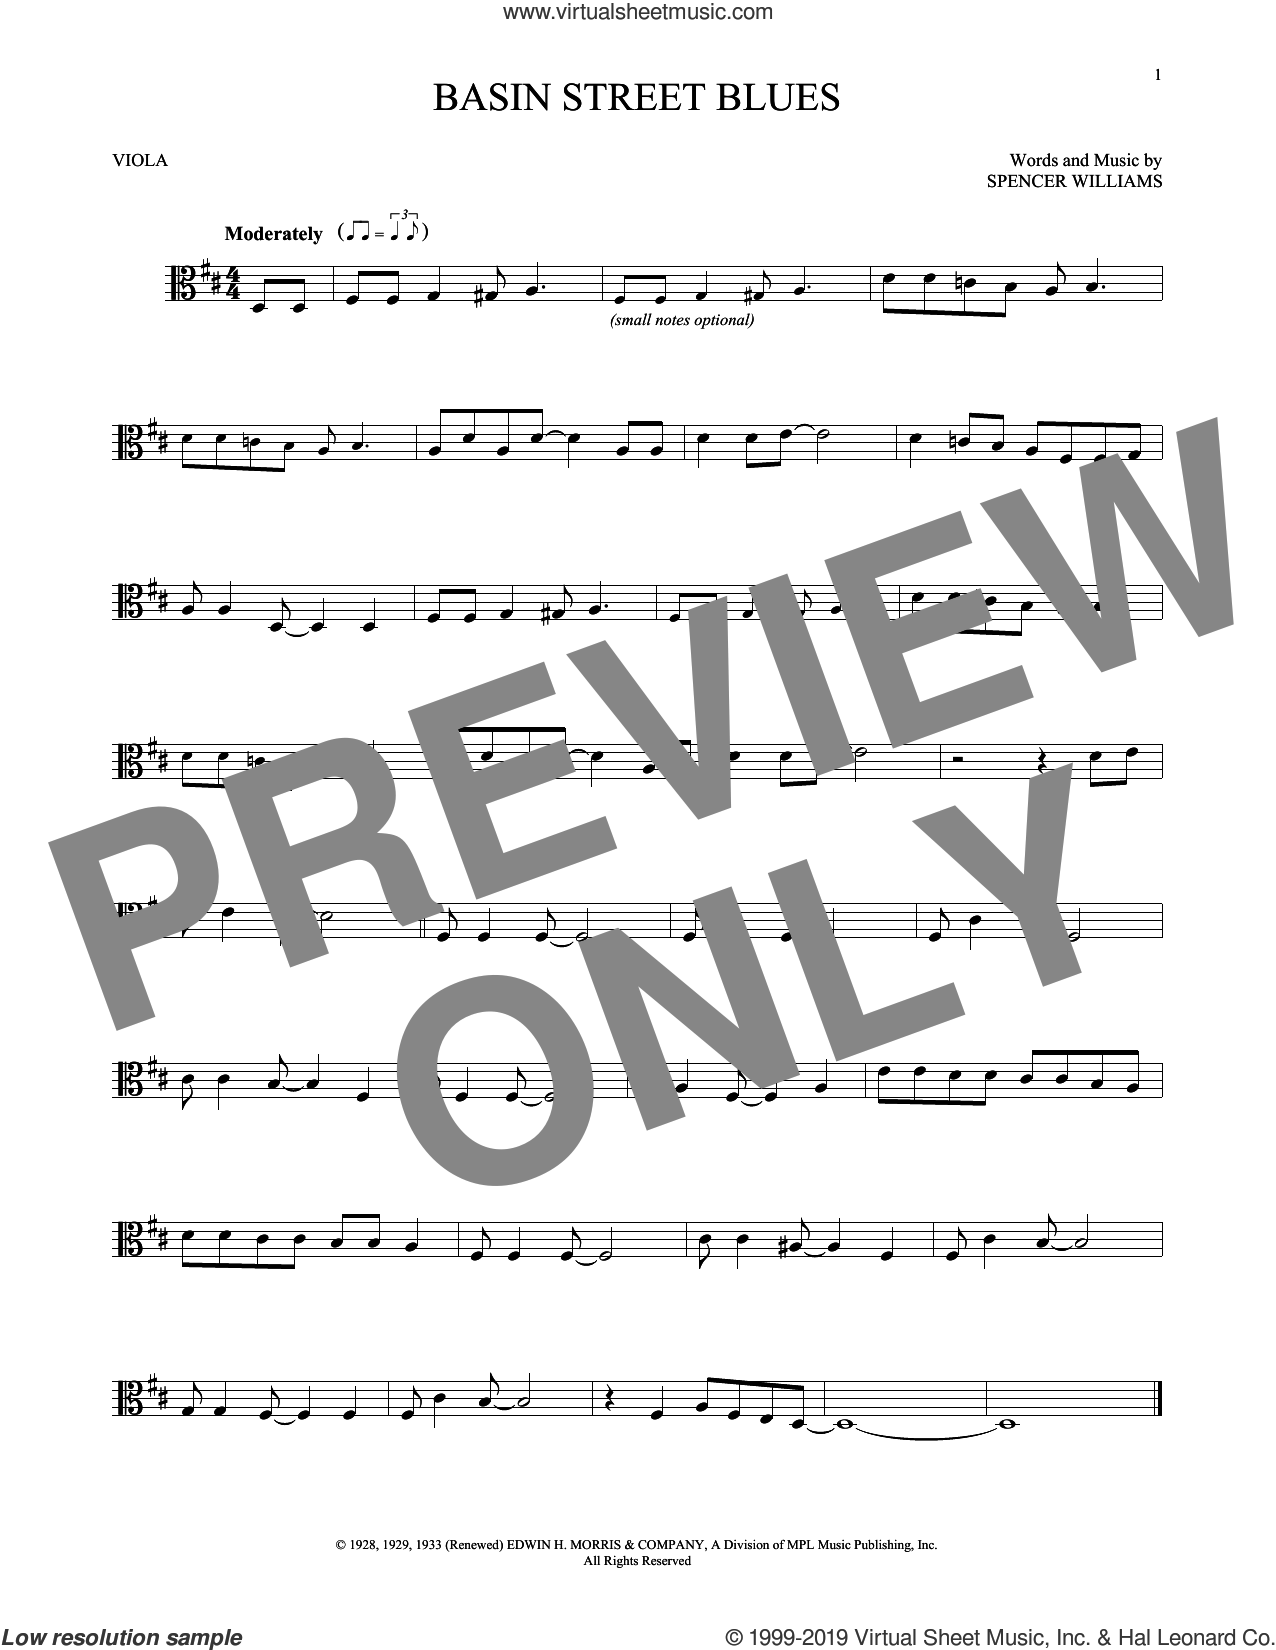 Basin Street Blues sheet music for viola solo by Spencer Williams, intermediate skill level